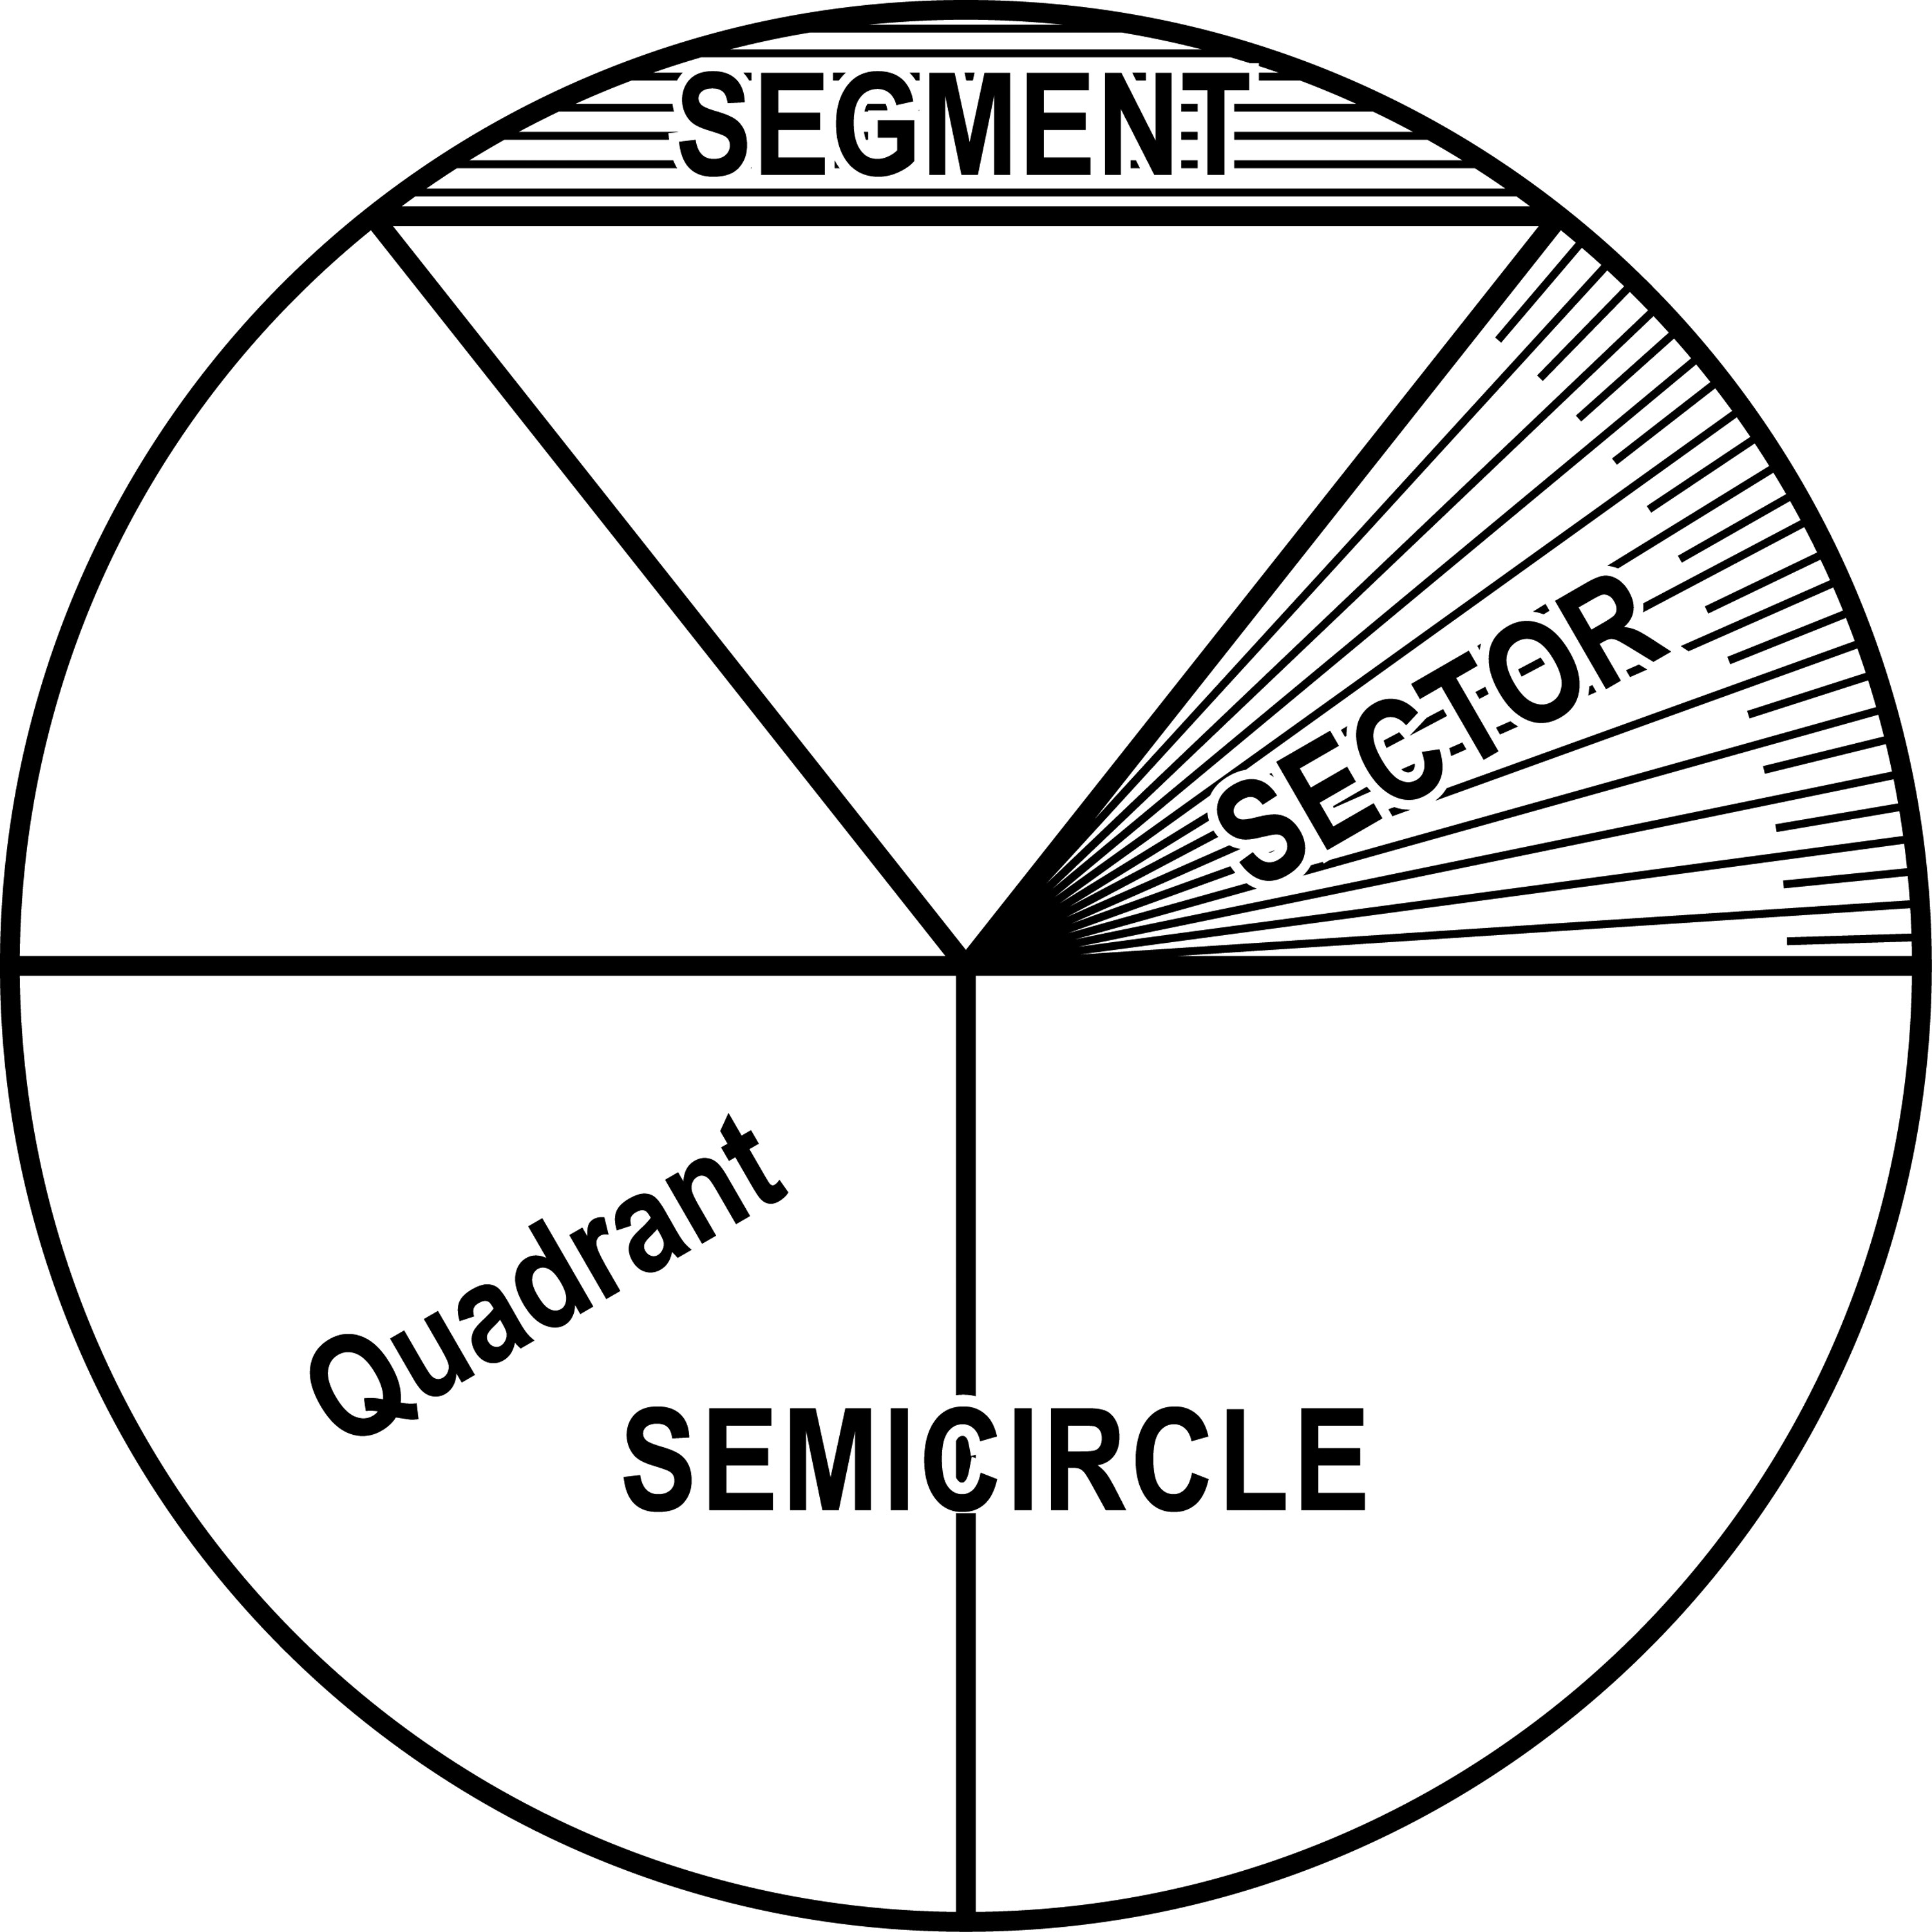 Circle with Segment, Semicircle, Sector, Quadrant, and